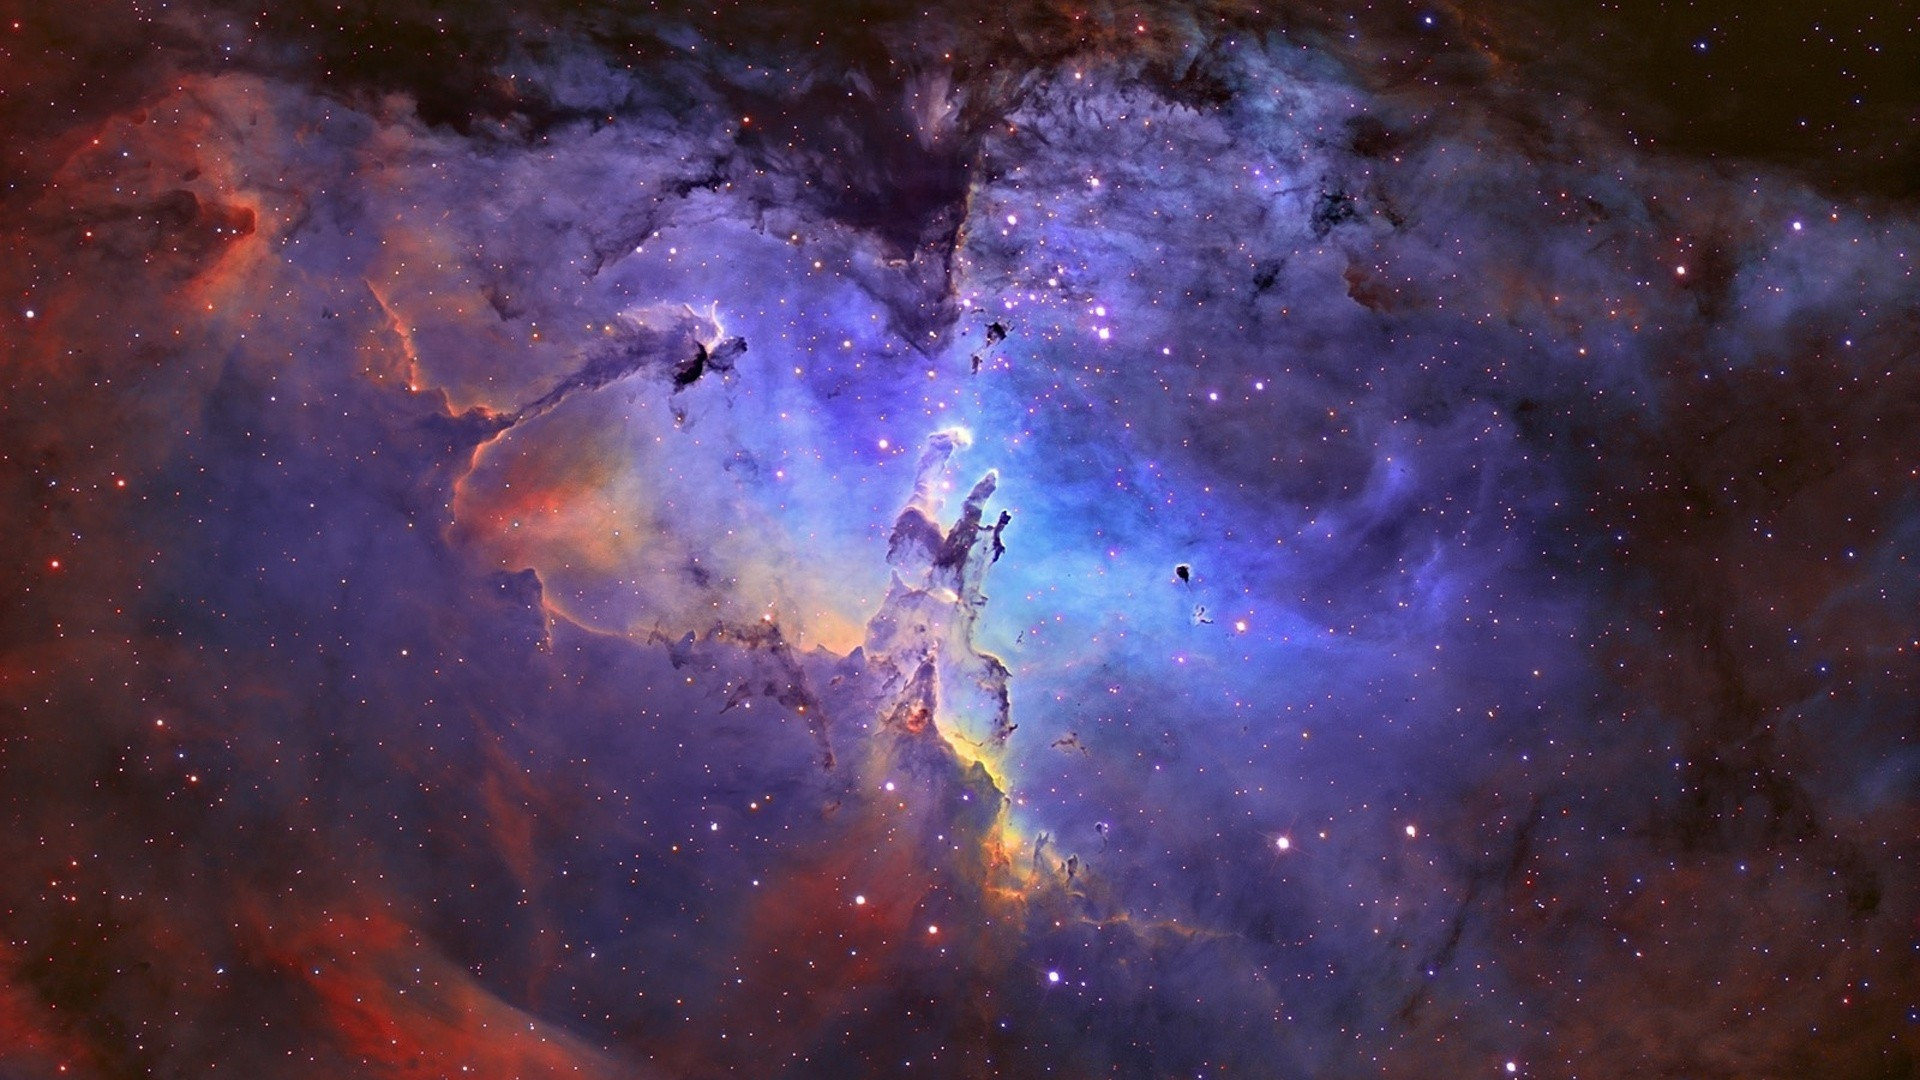 Outer space eagle nebula wallpaper | 1920x1080 | 7326 ...